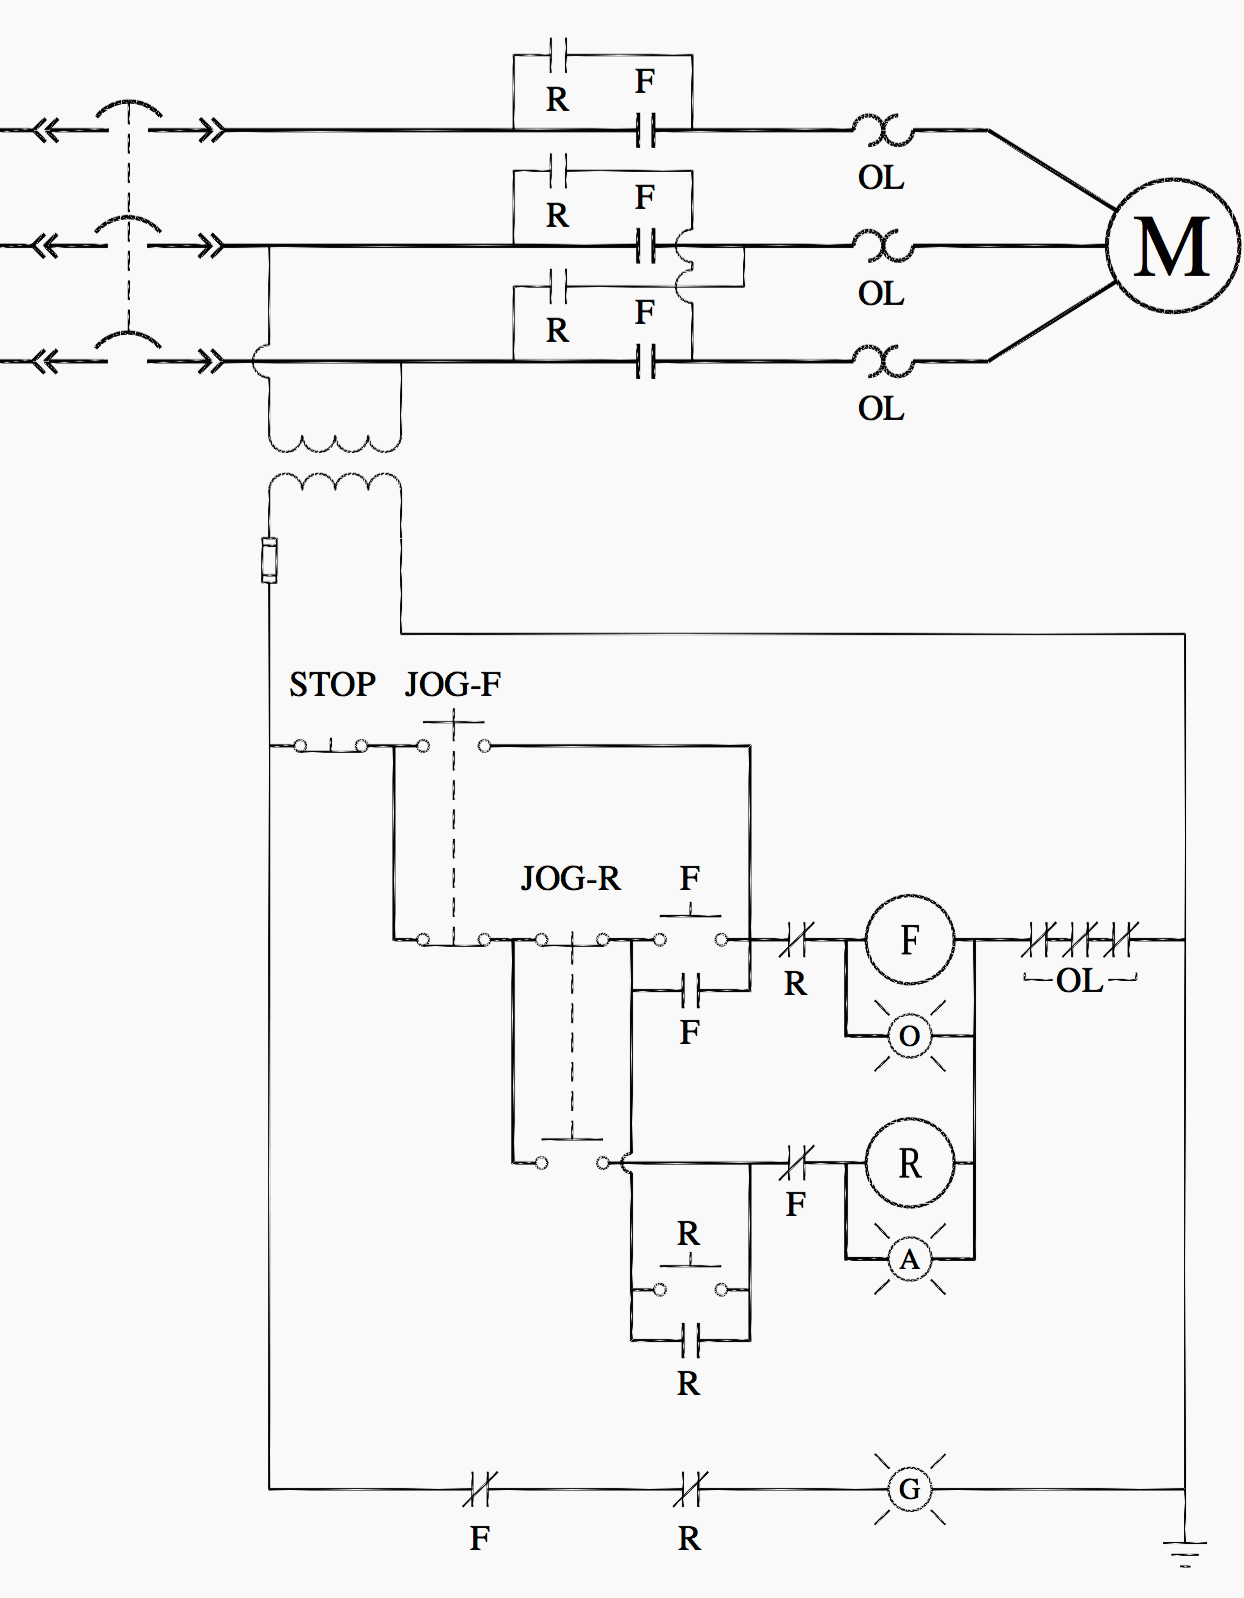 hight resolution of how to build jogging timer circuit diagram wiring diagram blog ladder logic for special motor control